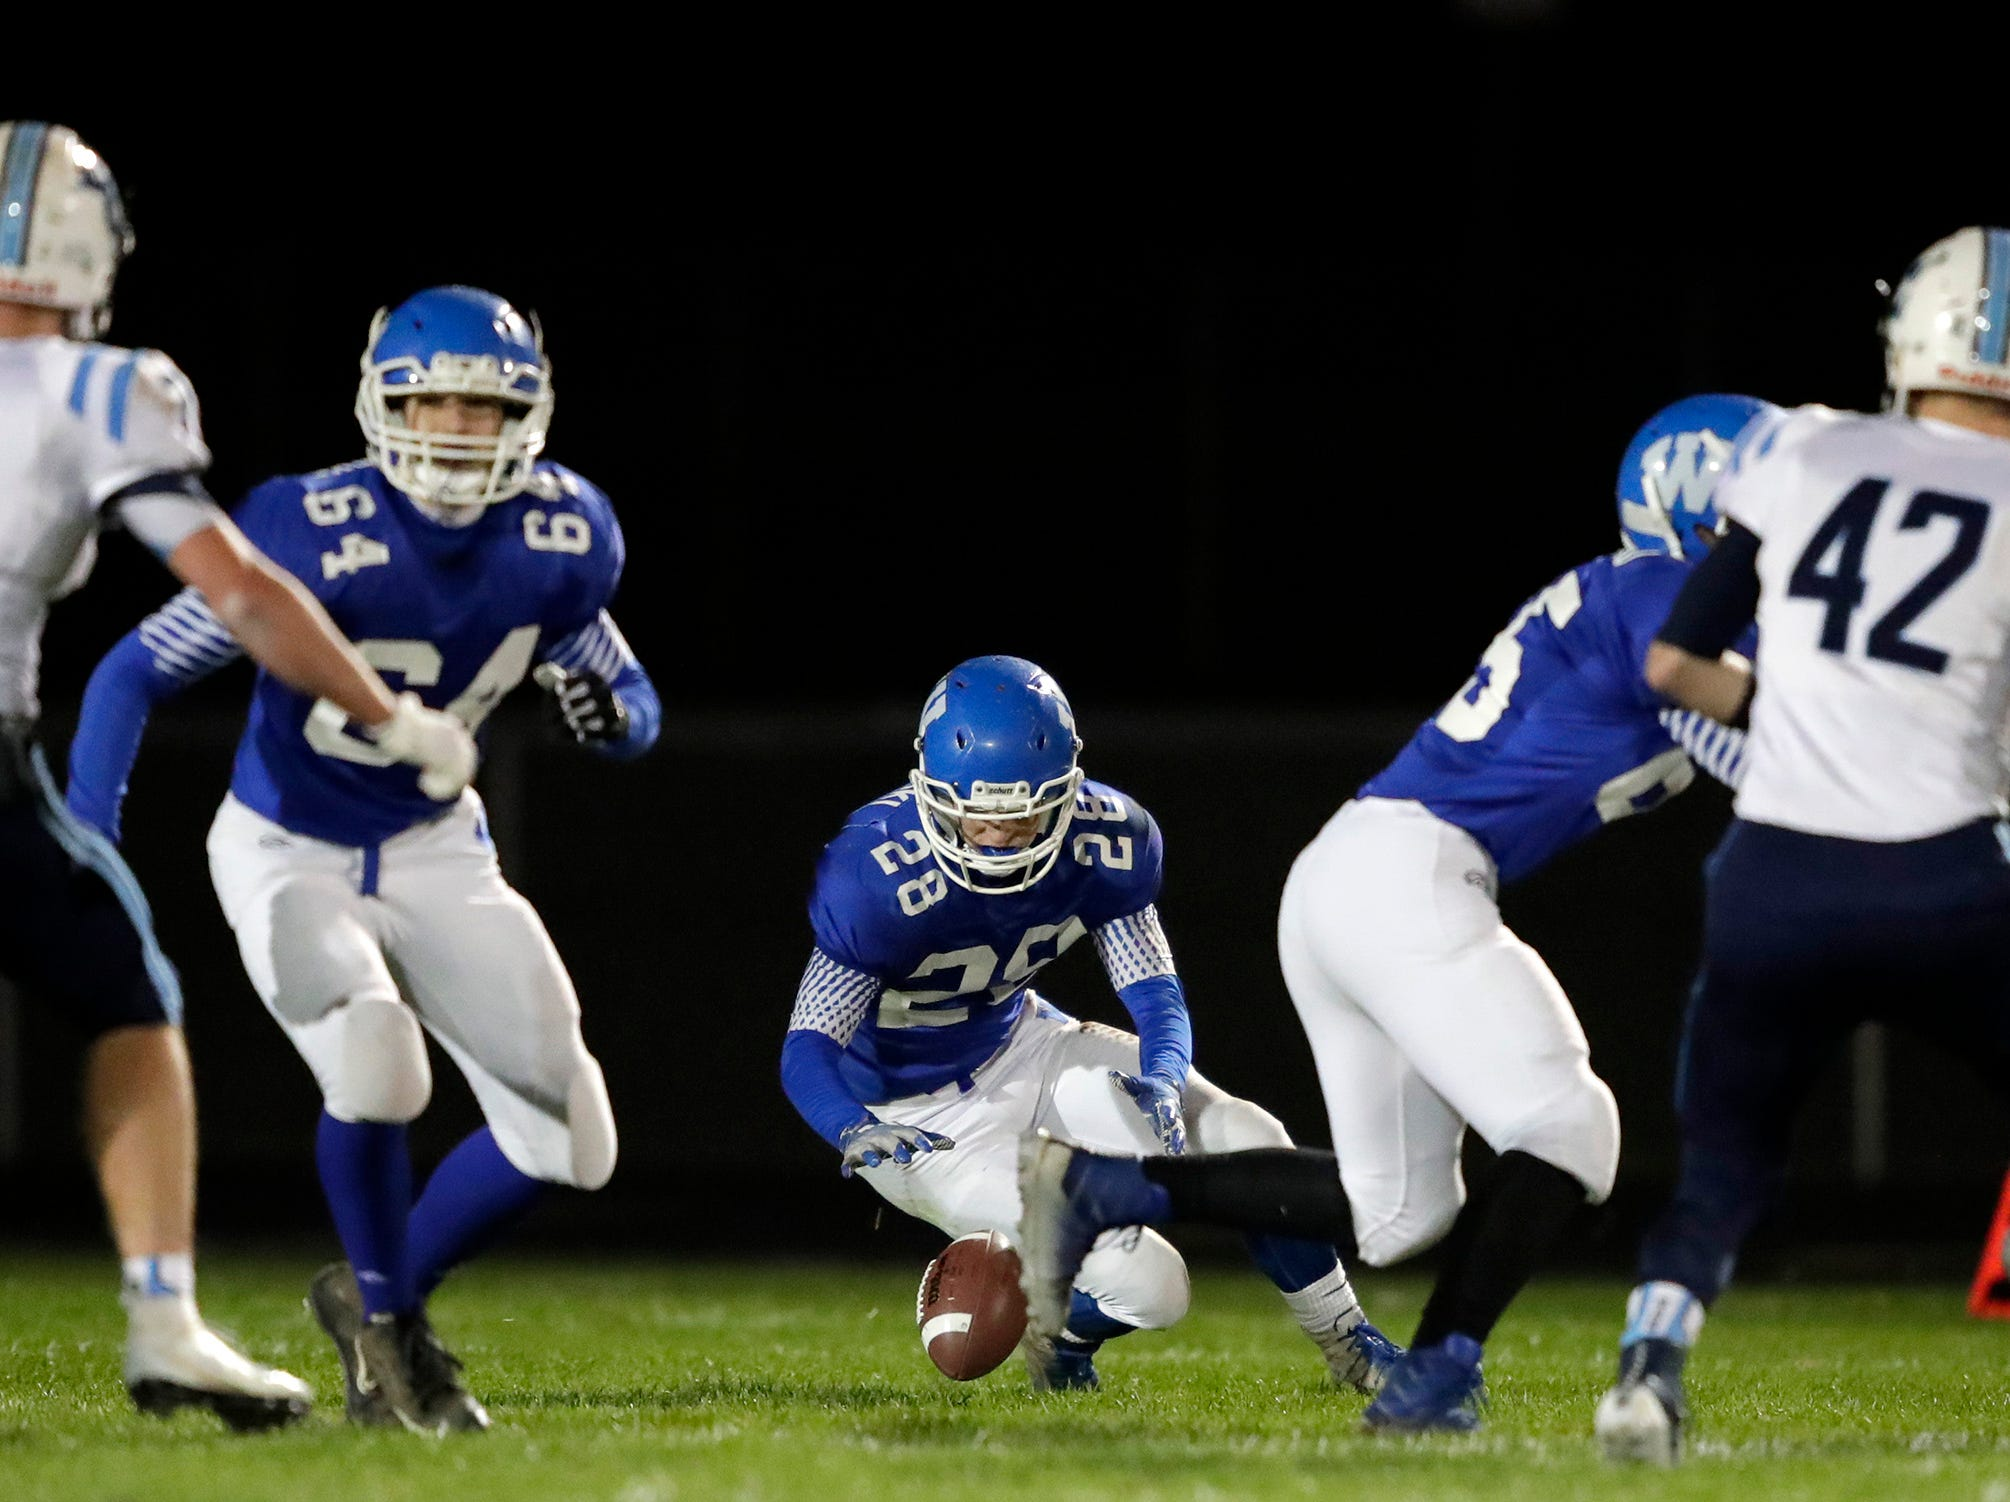 Little Chute High School against Wrightstown High School during their North Eastern Conference football game on Friday, October 12, 2018 in Wrightstown Wis. 